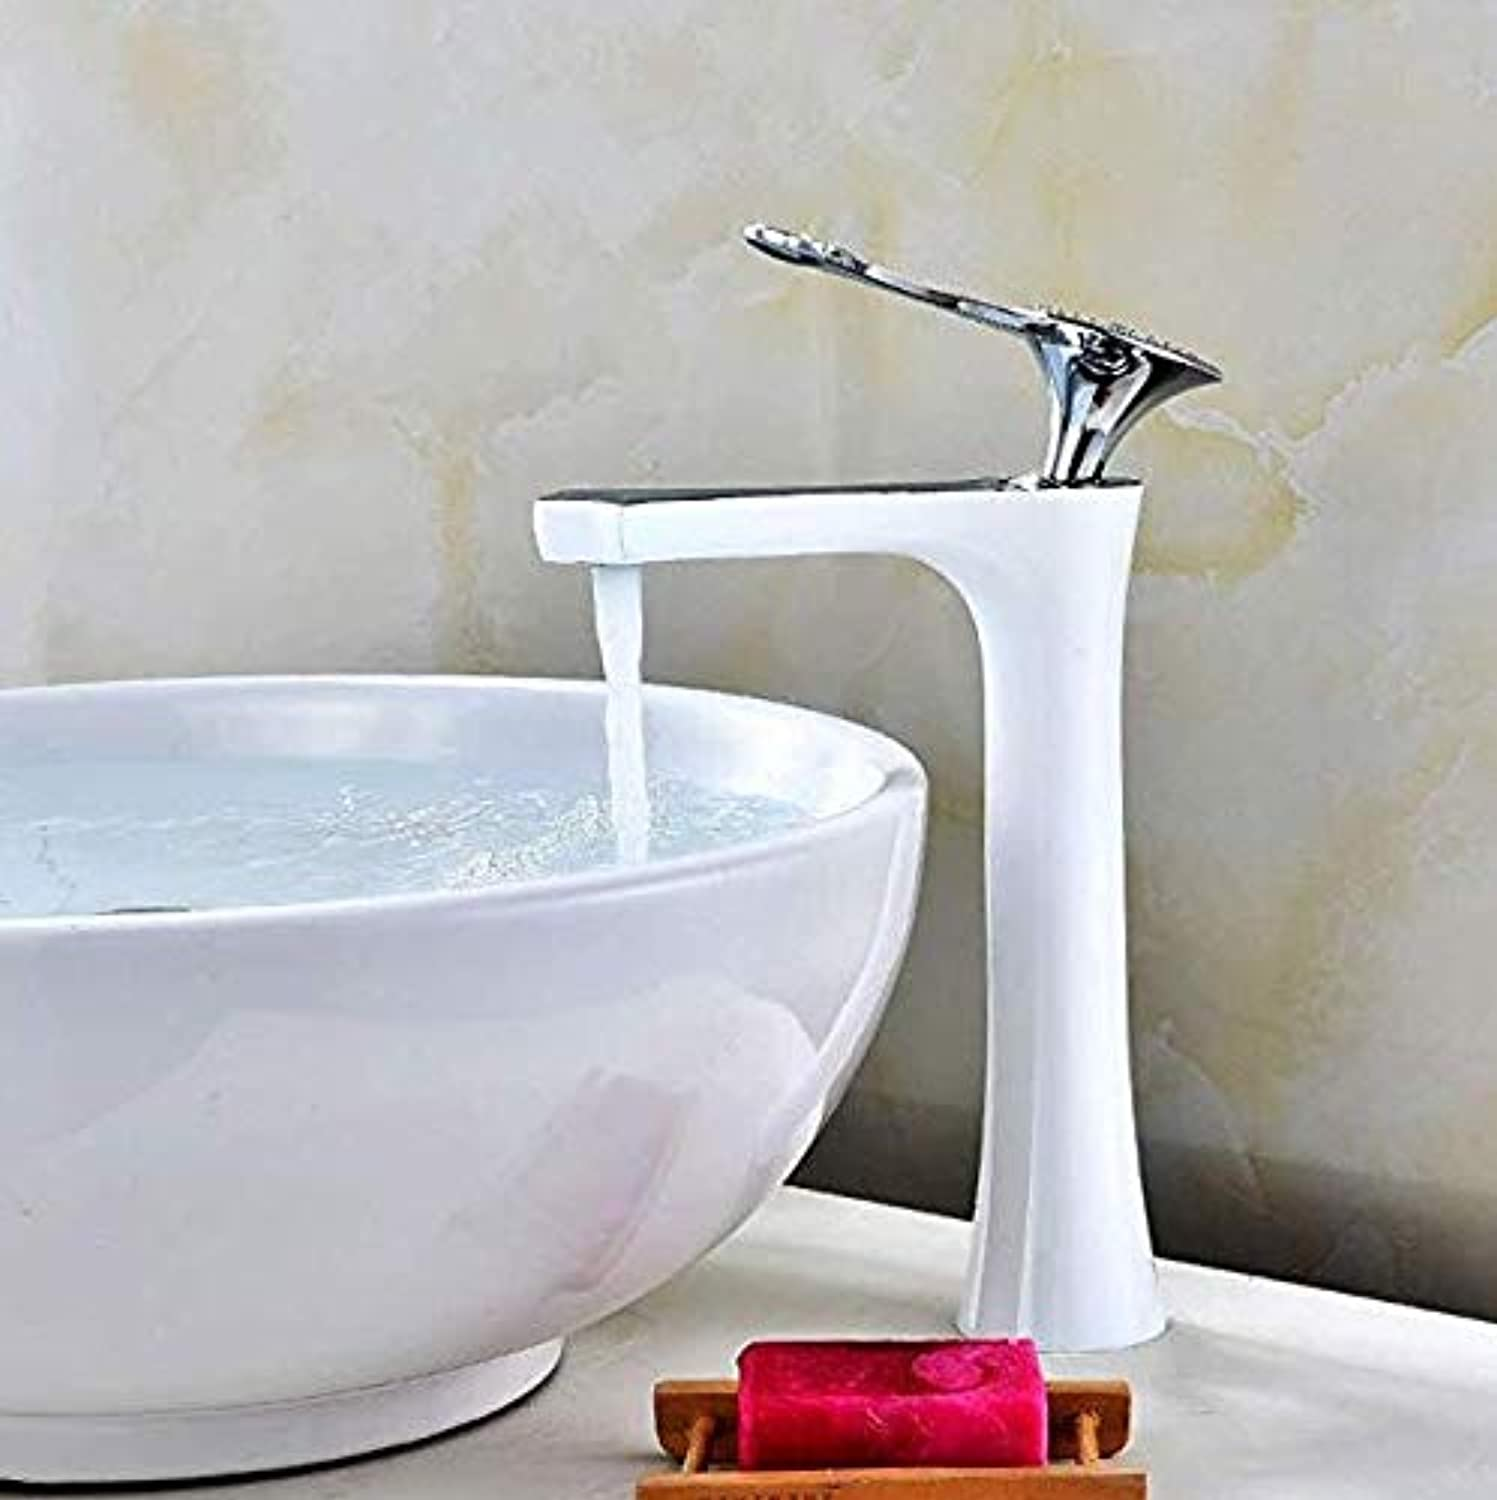 Bathroom Sink Tap Hot Cold Faucet Washbasin Single Handle 360 Degree redation All Copper Paint Basin Faucet Black Ancient Wash Basin Hot and Cold Faucet Single Hole Bathroom Faucet